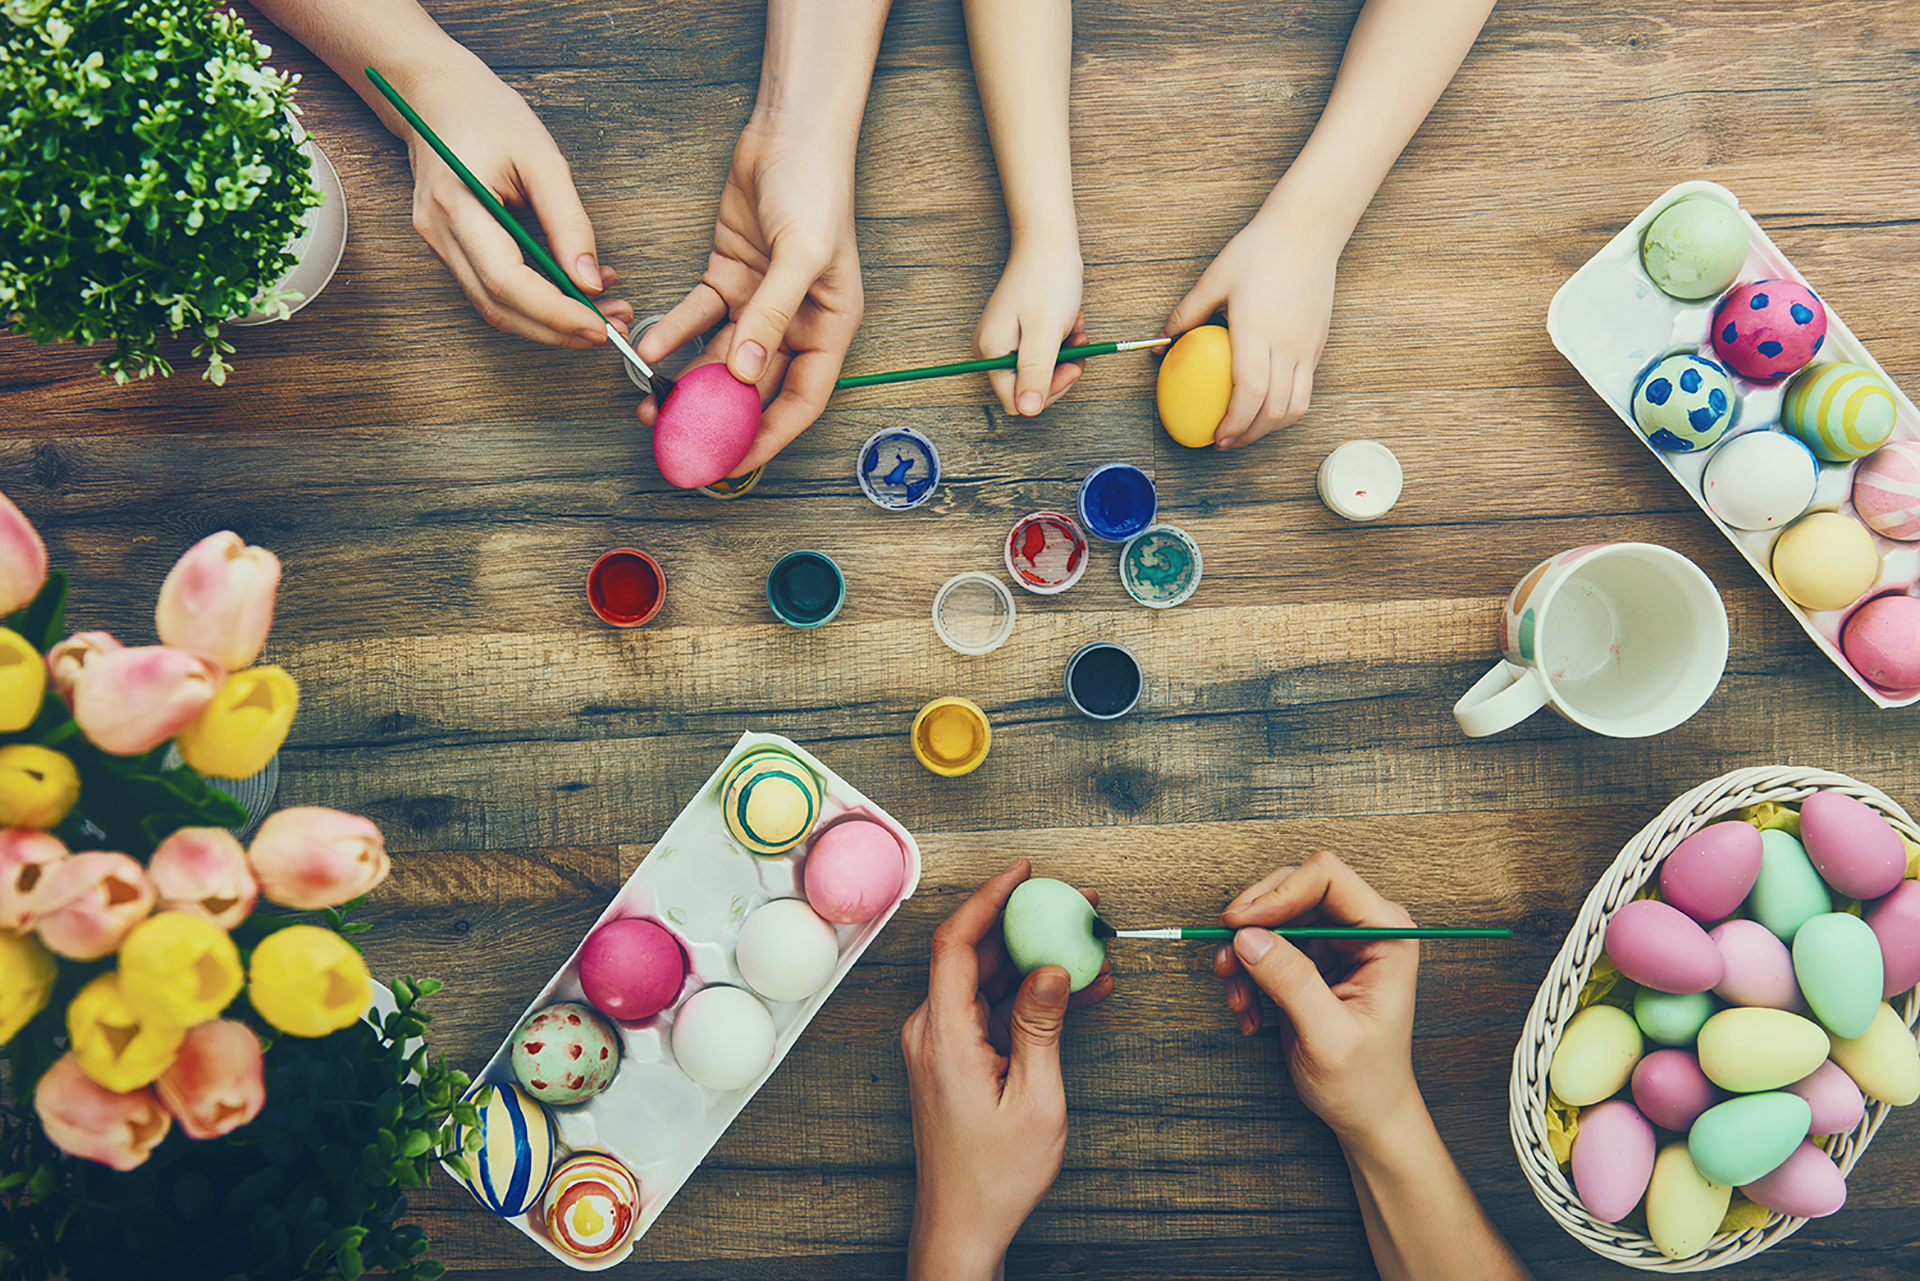 4 Simple Fun Diy Easter Decoration Ideas For All Ages